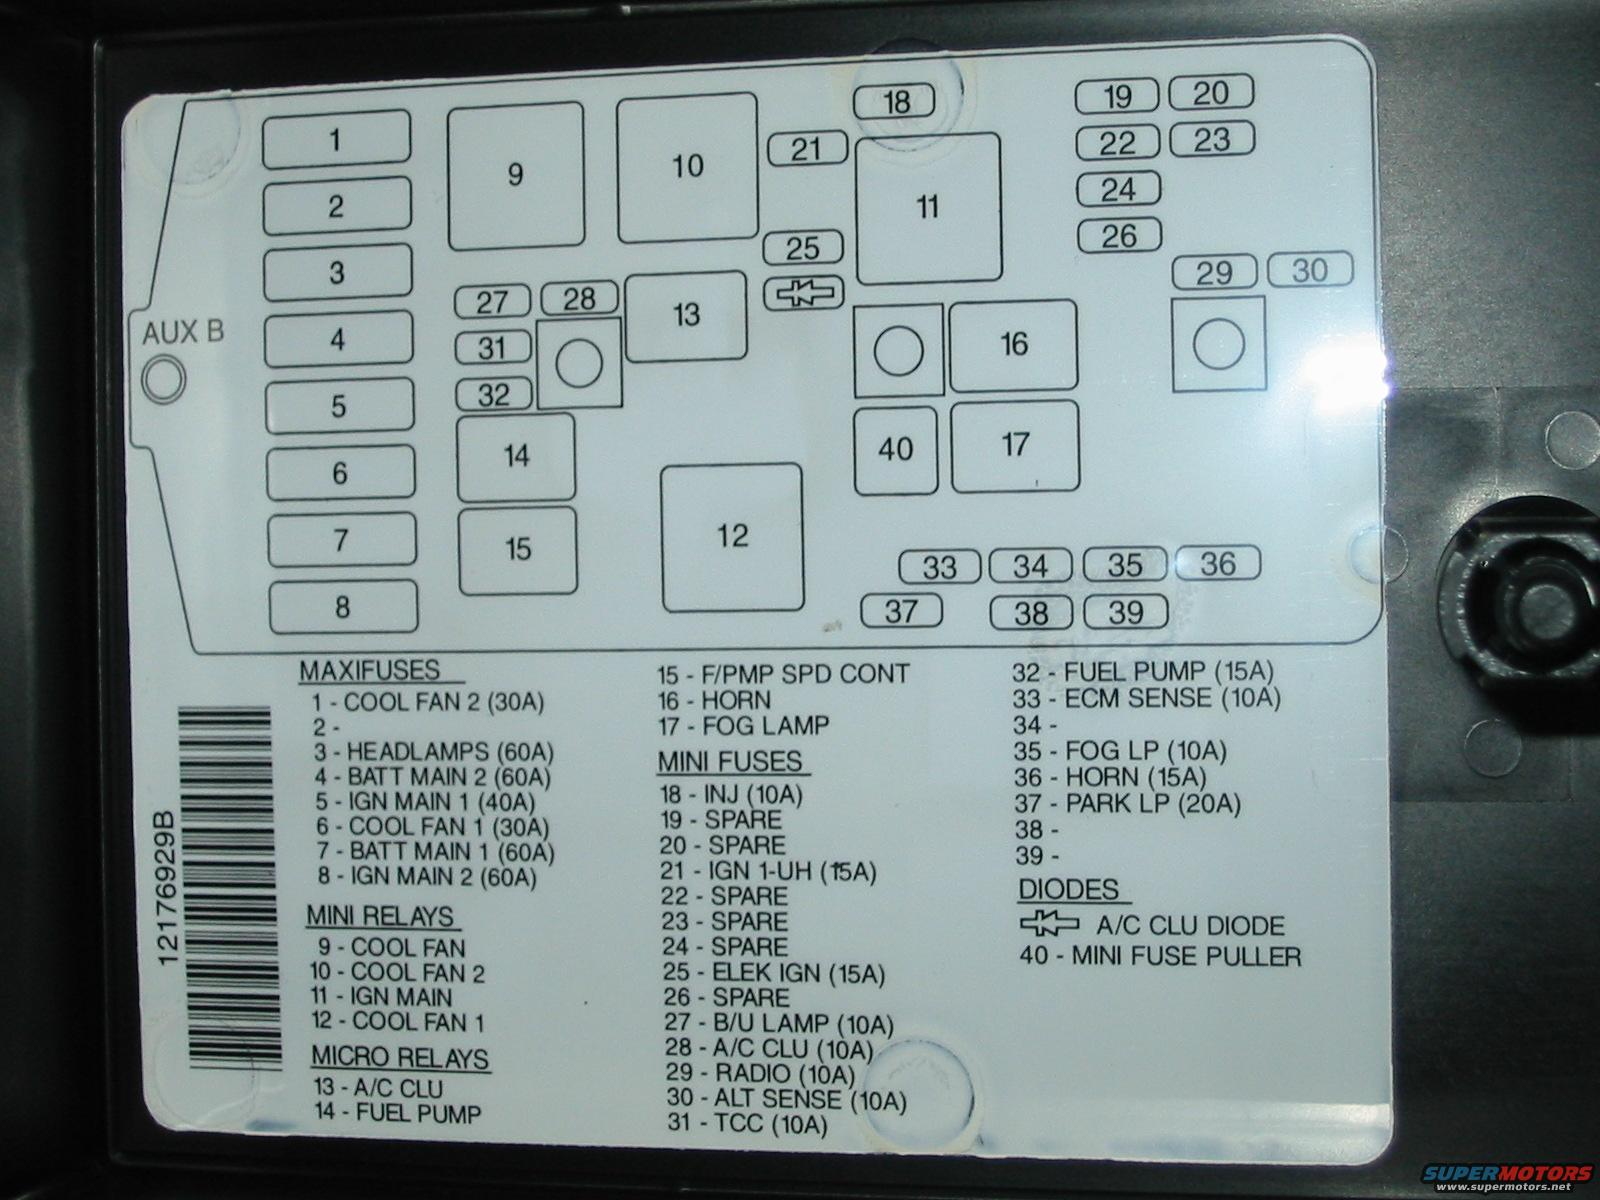 fuse relay panel diagram jpg hits 2923 posted on 7 30 06 view